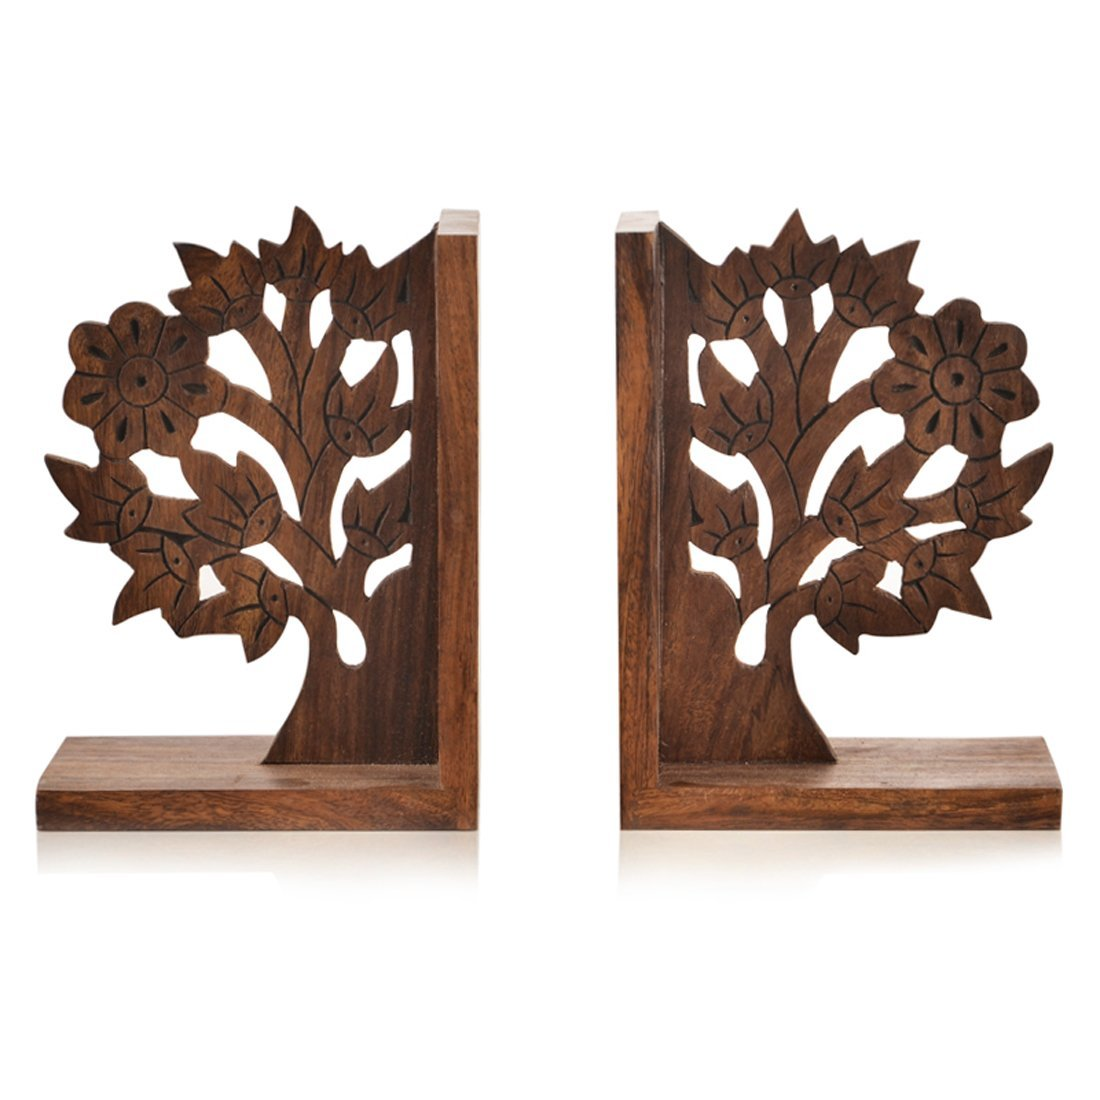 ExclusiveLane Wooden Tree Life Book End in Sheesham Wood (Handmade in India) -Book Organizer Book Holder Book Ends for Shelves Decorative Bookends for Kids Handmade bookend Heavy Book Ends for Office